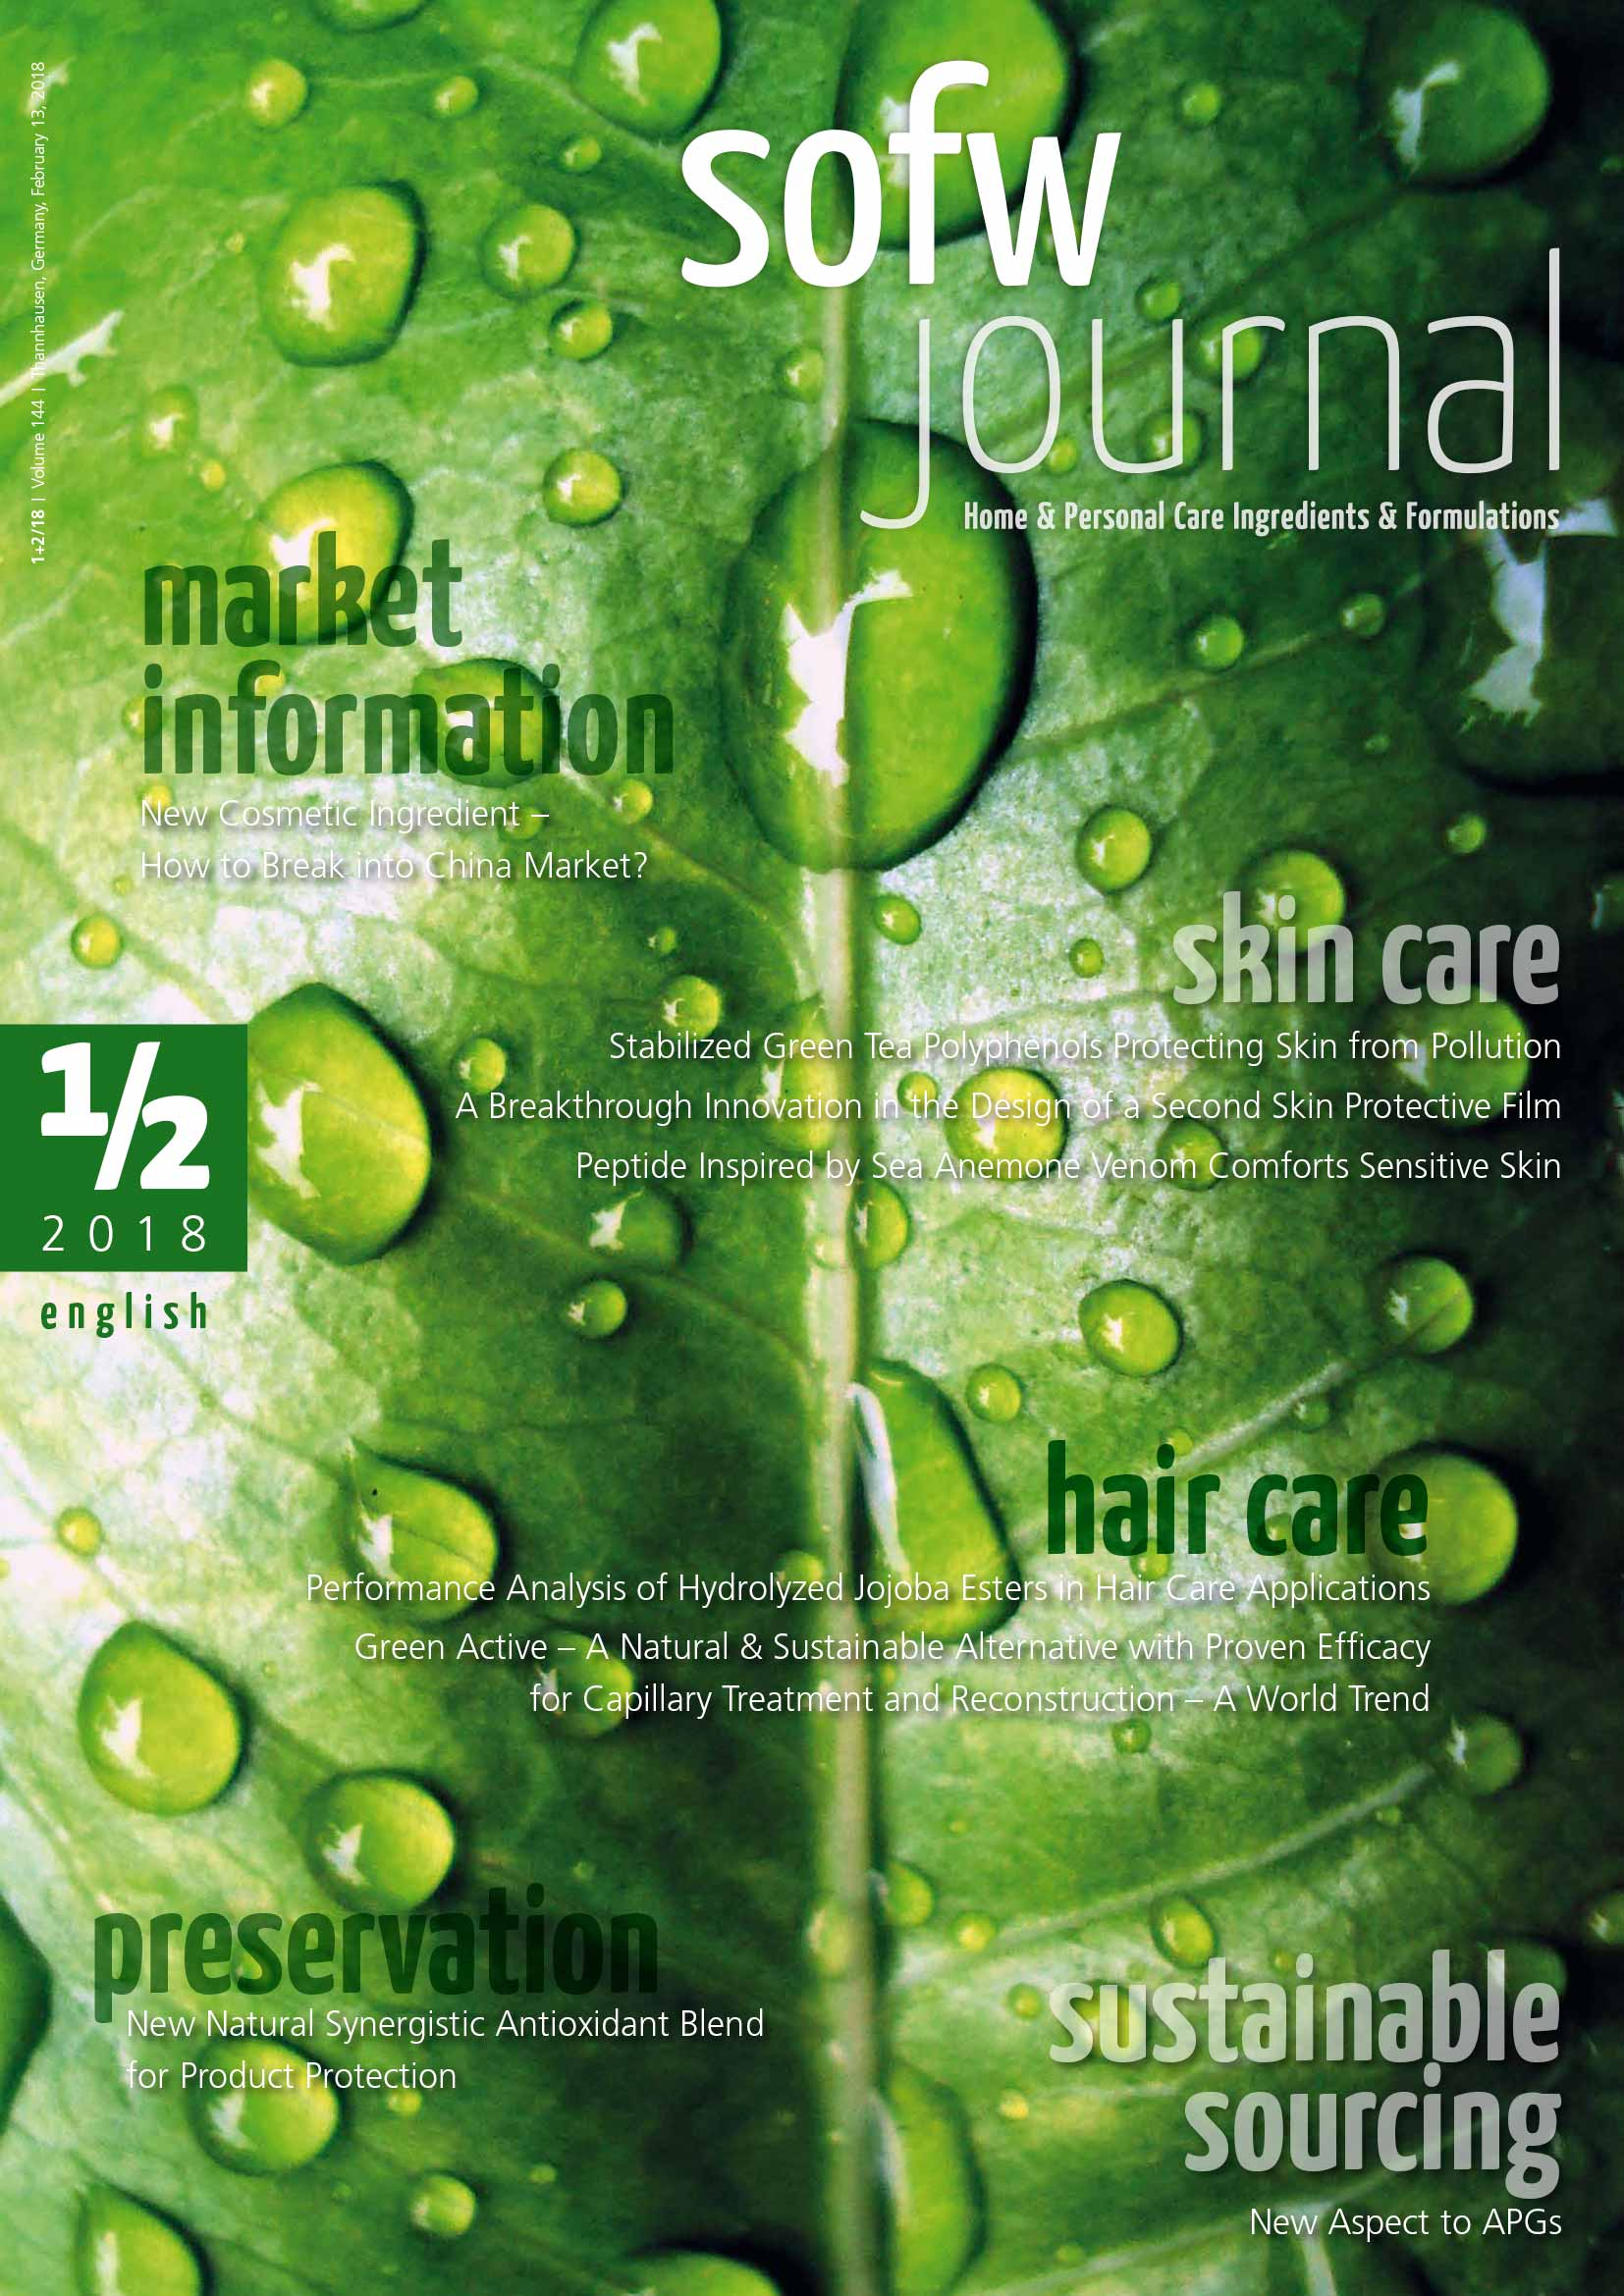 sofwjournal_en_2018_01_cover